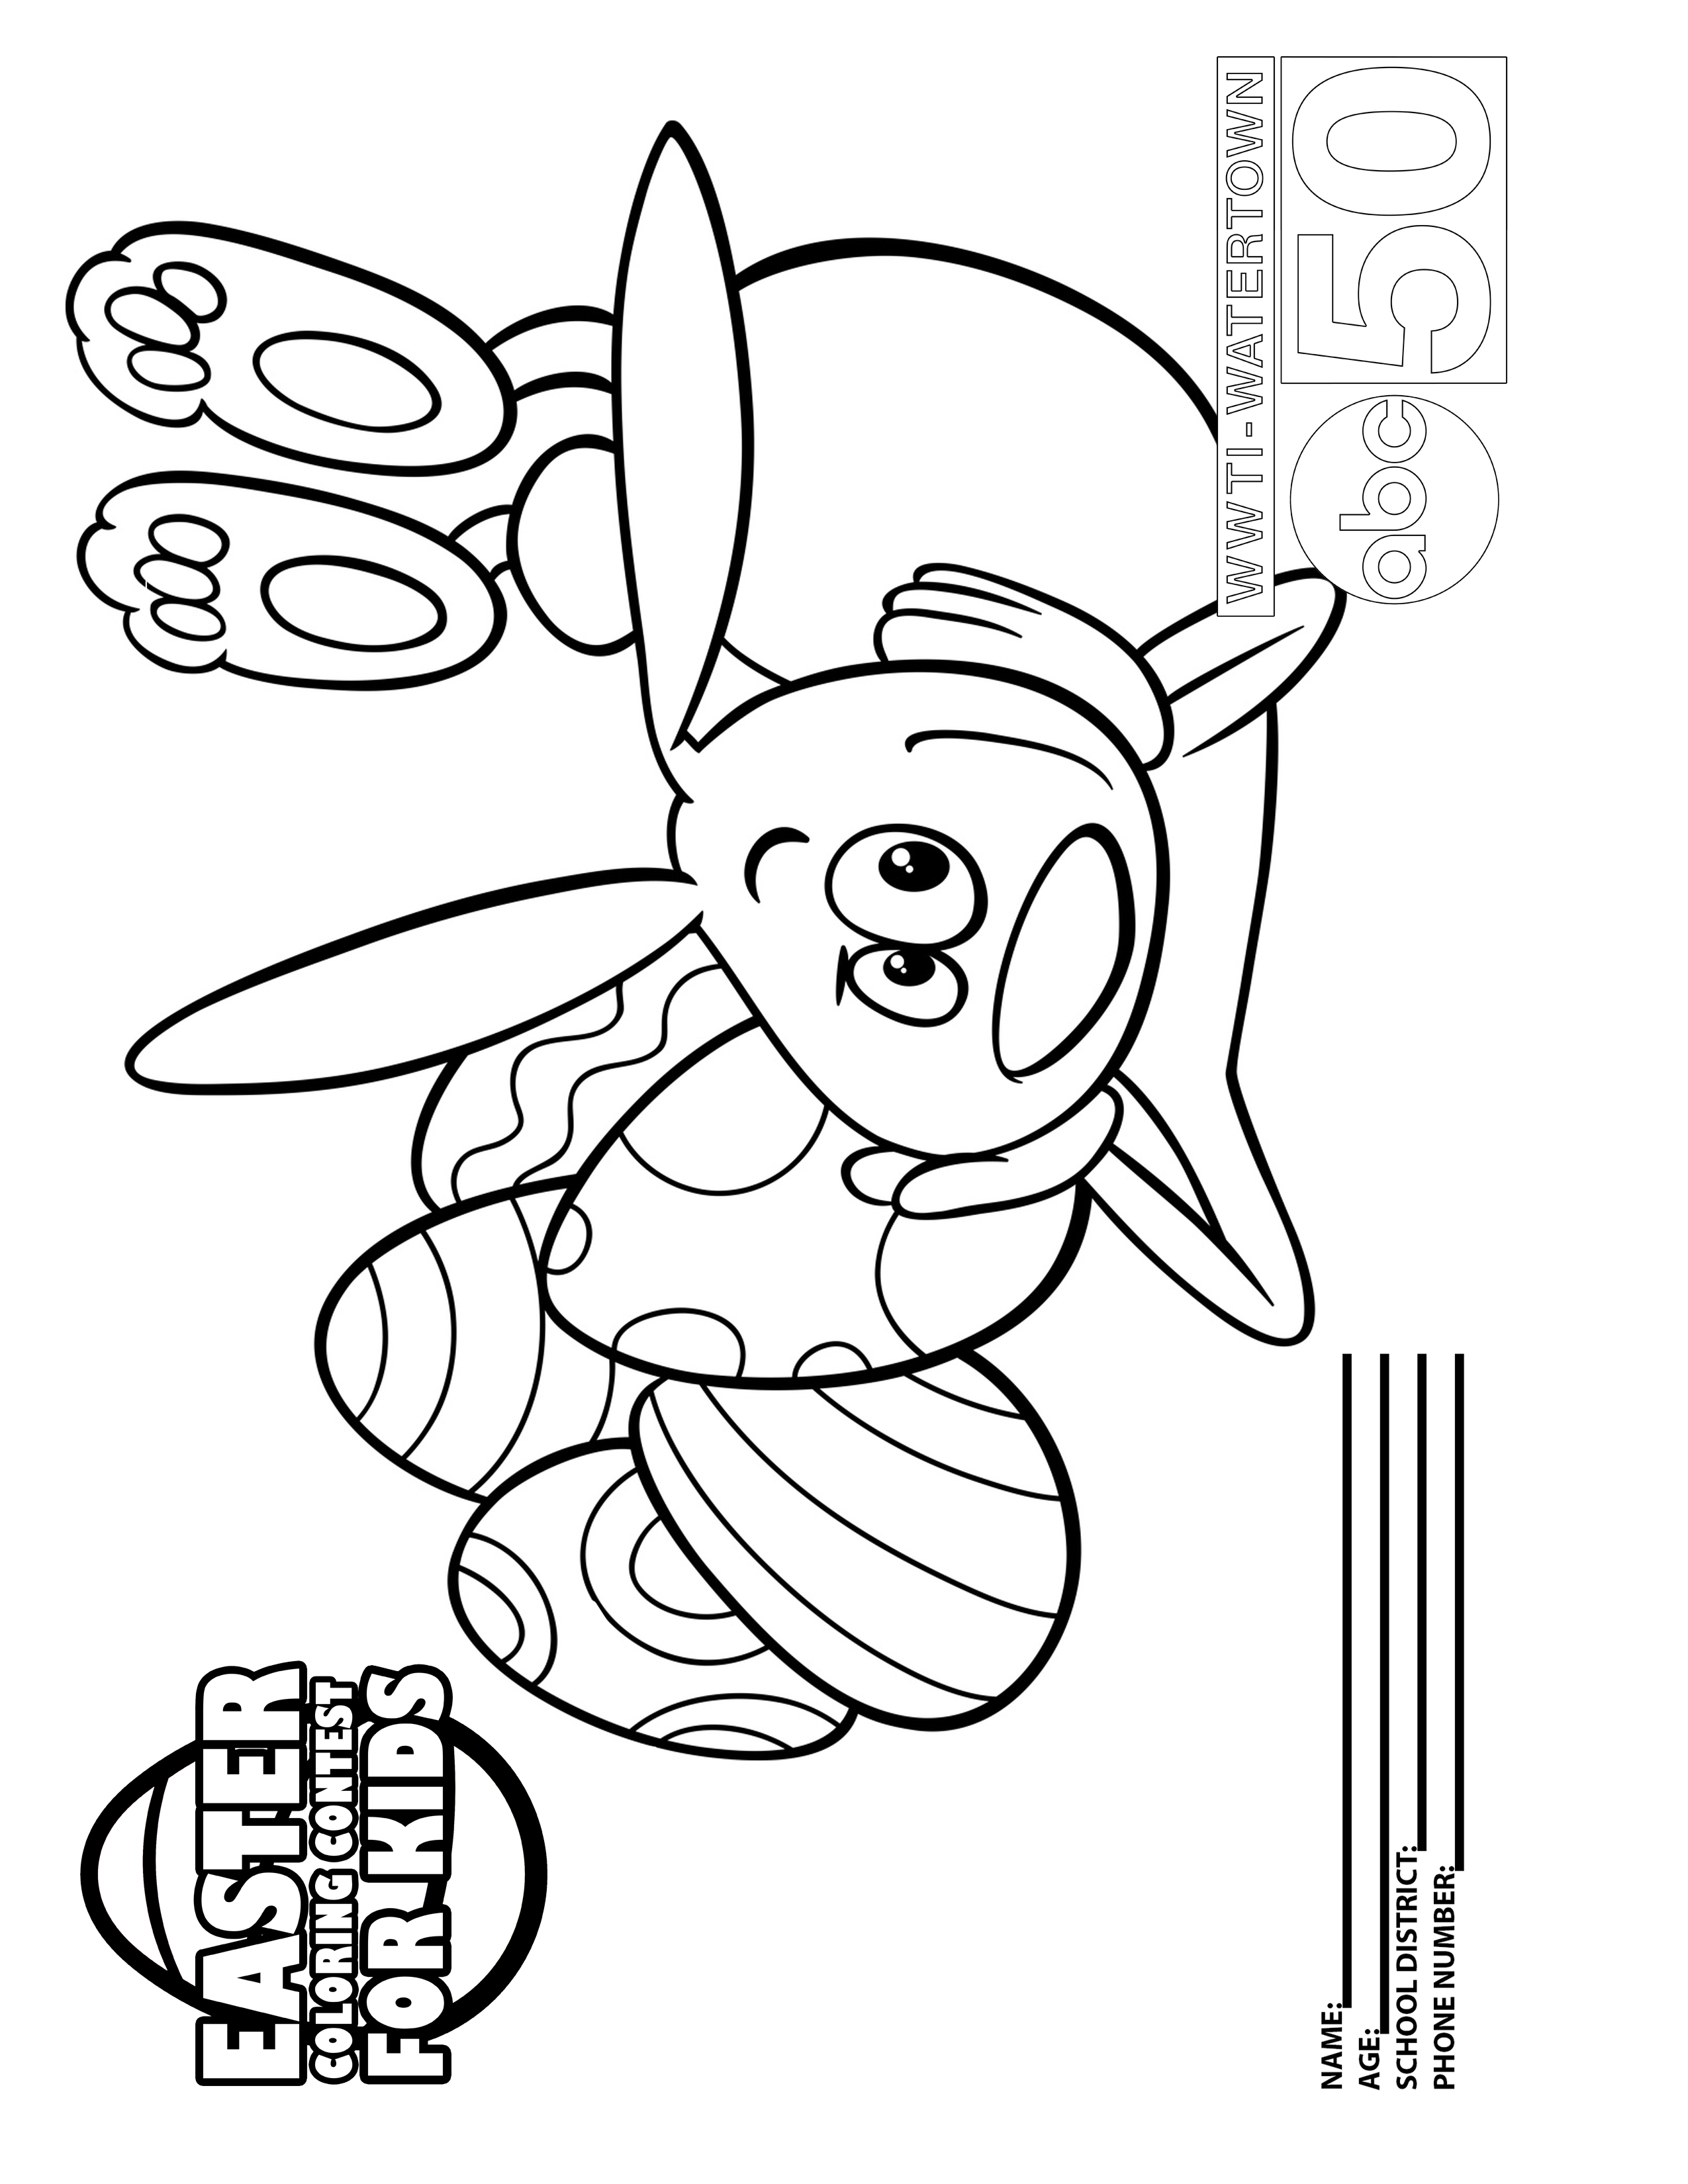 Easter Coloring Contest - INFORMNNY